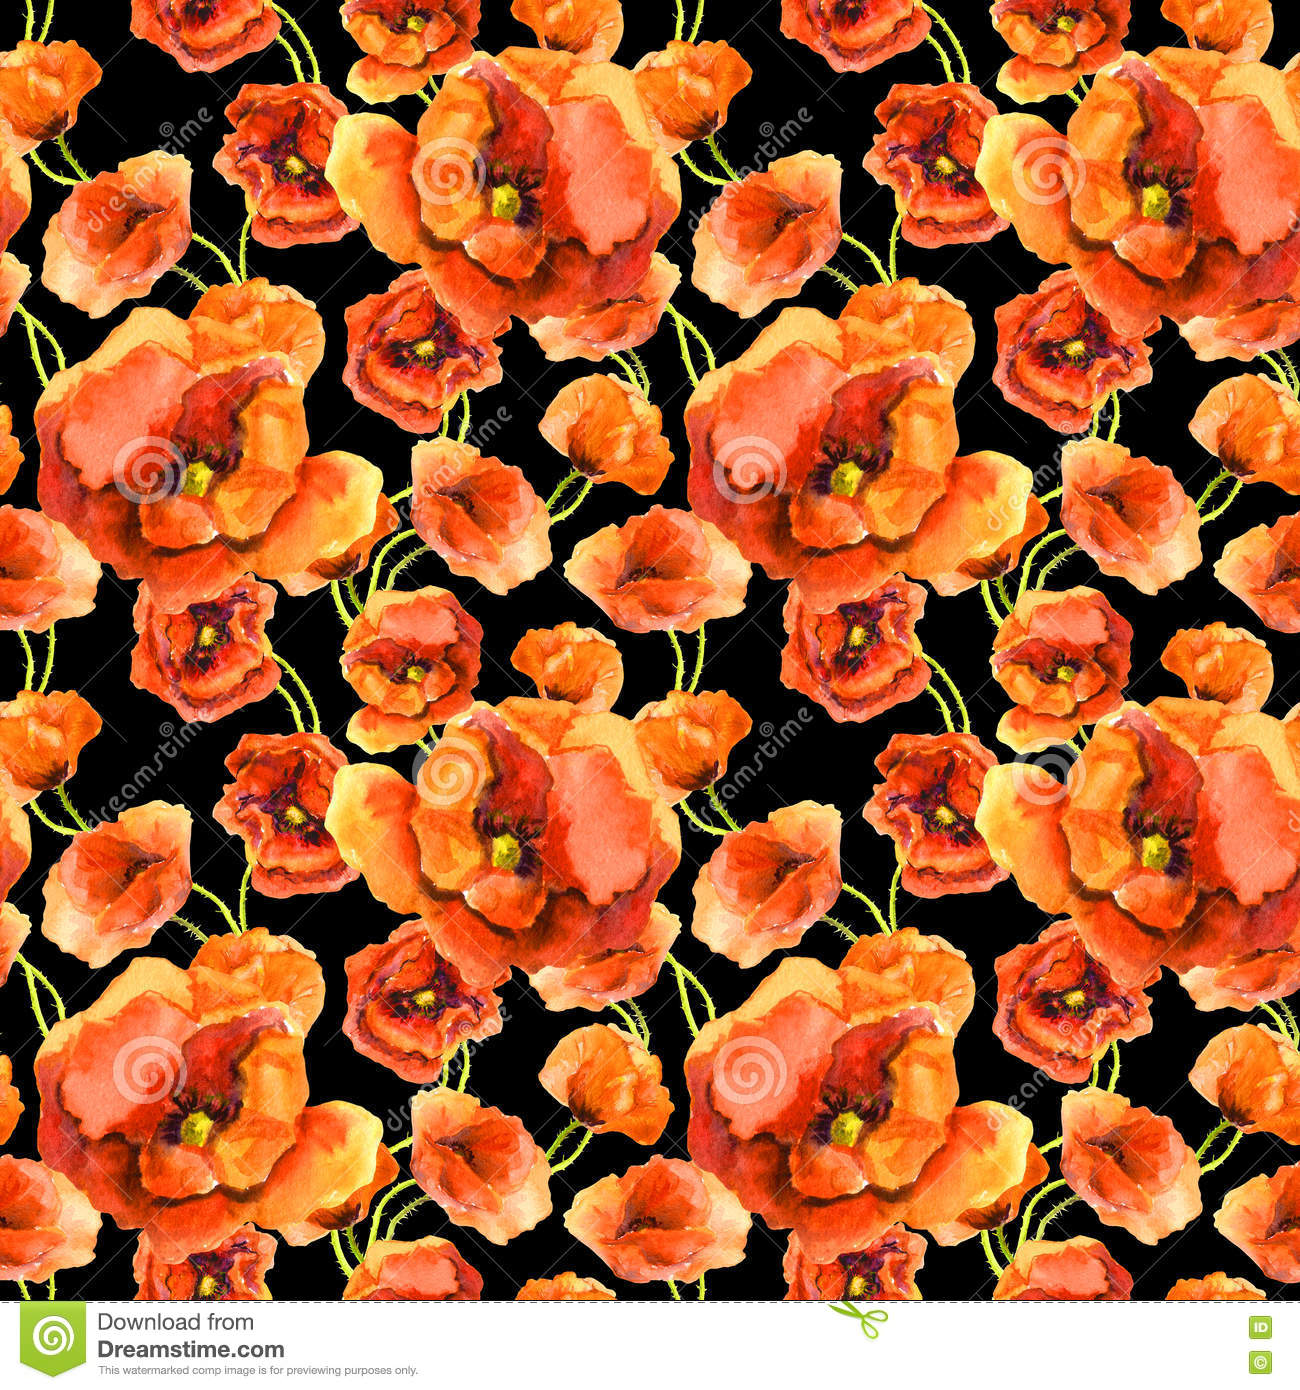 Seamless Contrast Floral Wallpaper With Red Poppy Flowers On Black